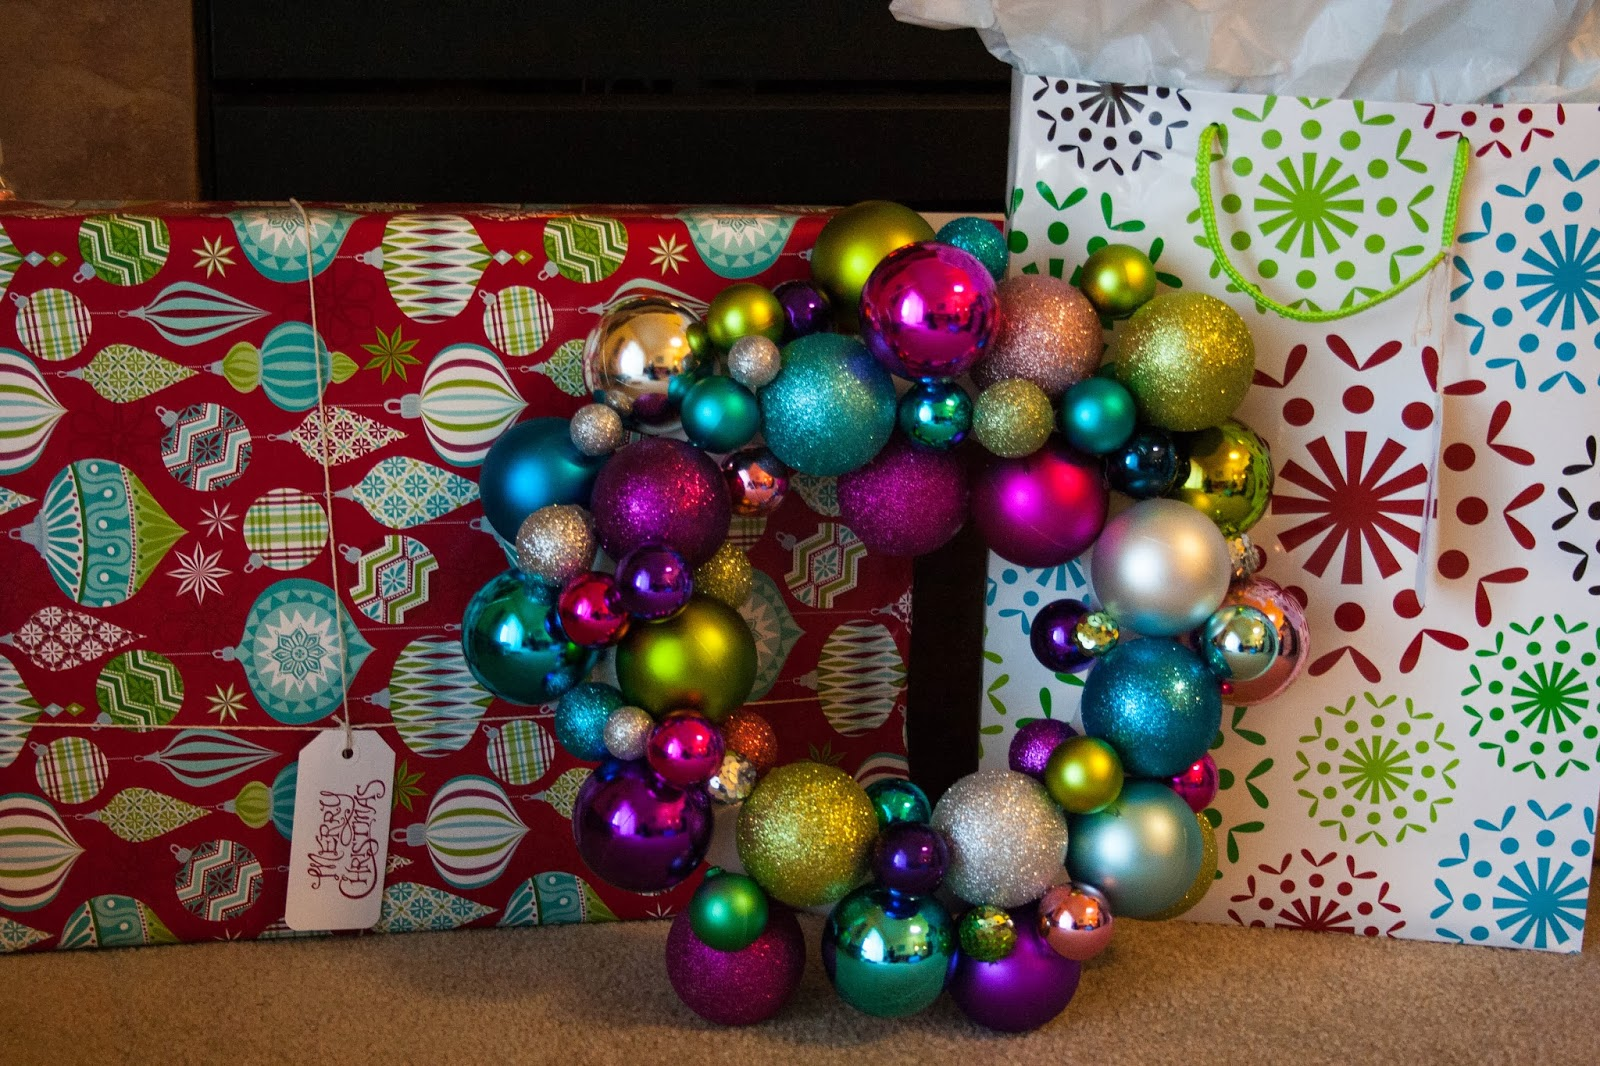 http://kristenjpeterson.blogspot.com/2013/12/diy-ornament-wreath.html